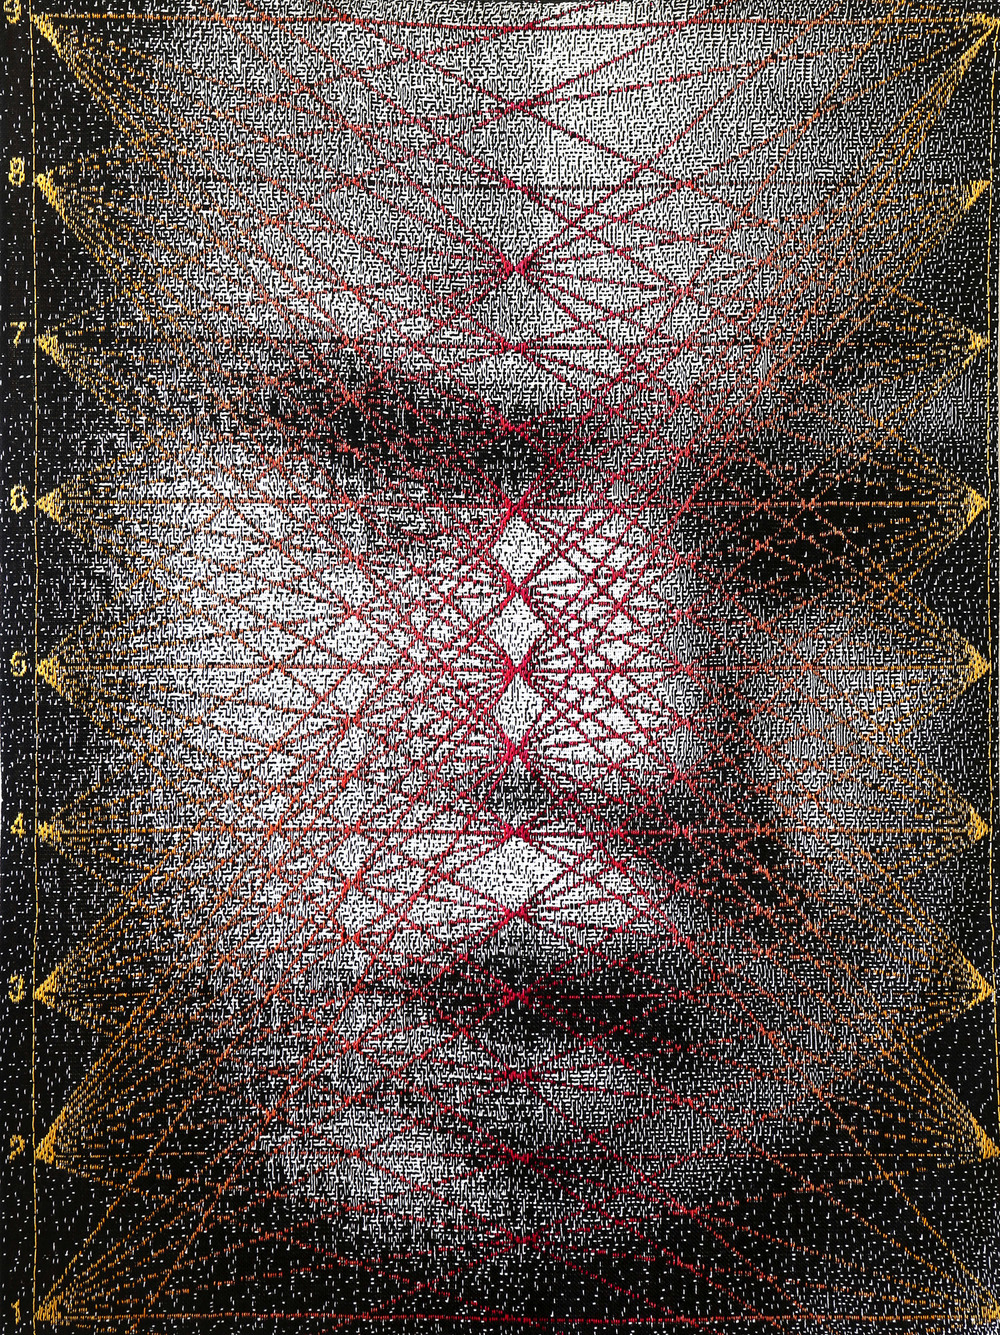 "Intensity Su Data Encore  2014 52"" x 40"" Cotton, rayon hand woven A behavioral study done within the exhibition space itself involving audience response to viewing a photographic face to a woven face. Data from the study is woven back into the face using data visualization of positivity ratings."